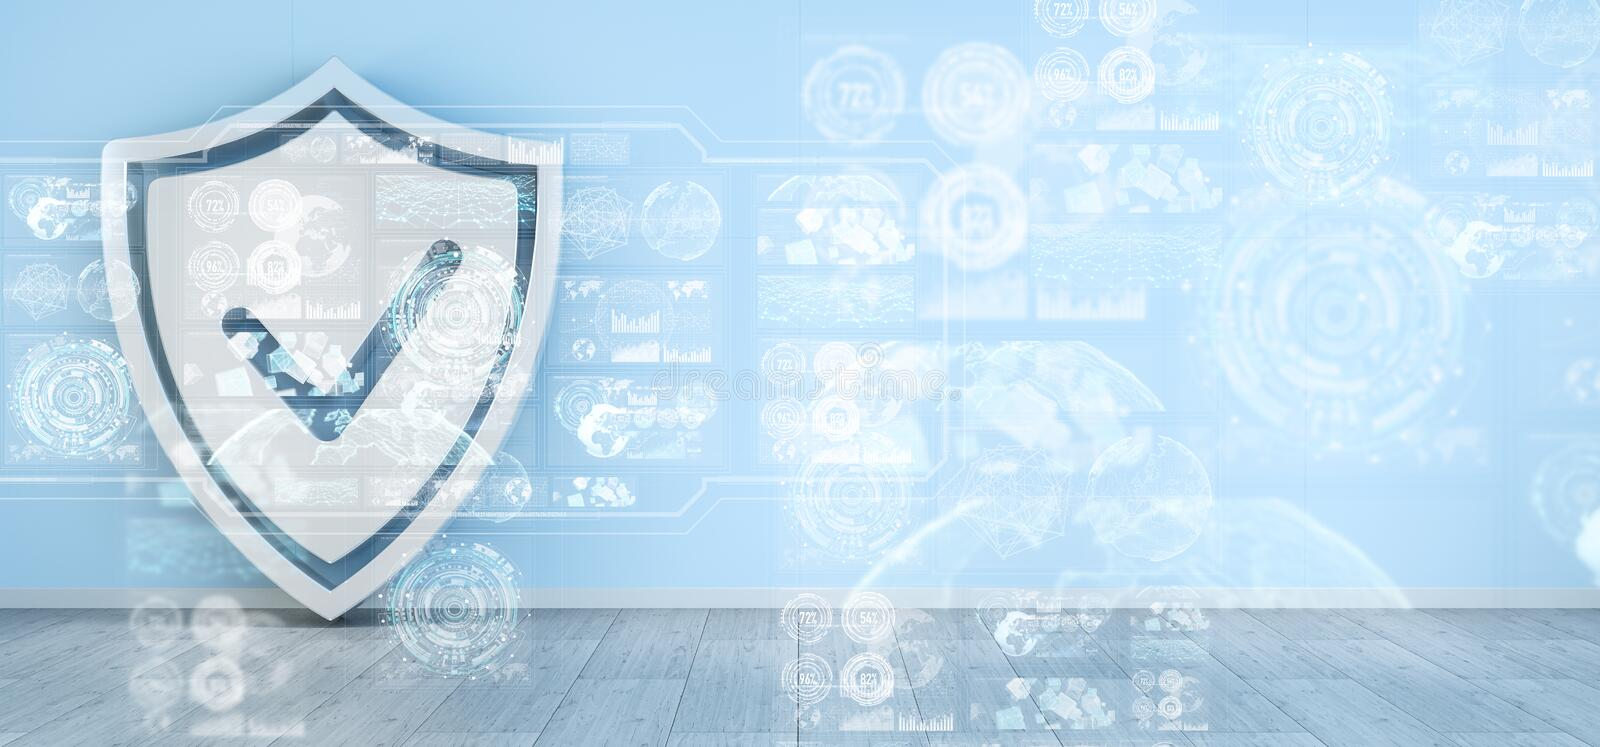 Shield icons in interior with web interface 3D rendering stock illustration